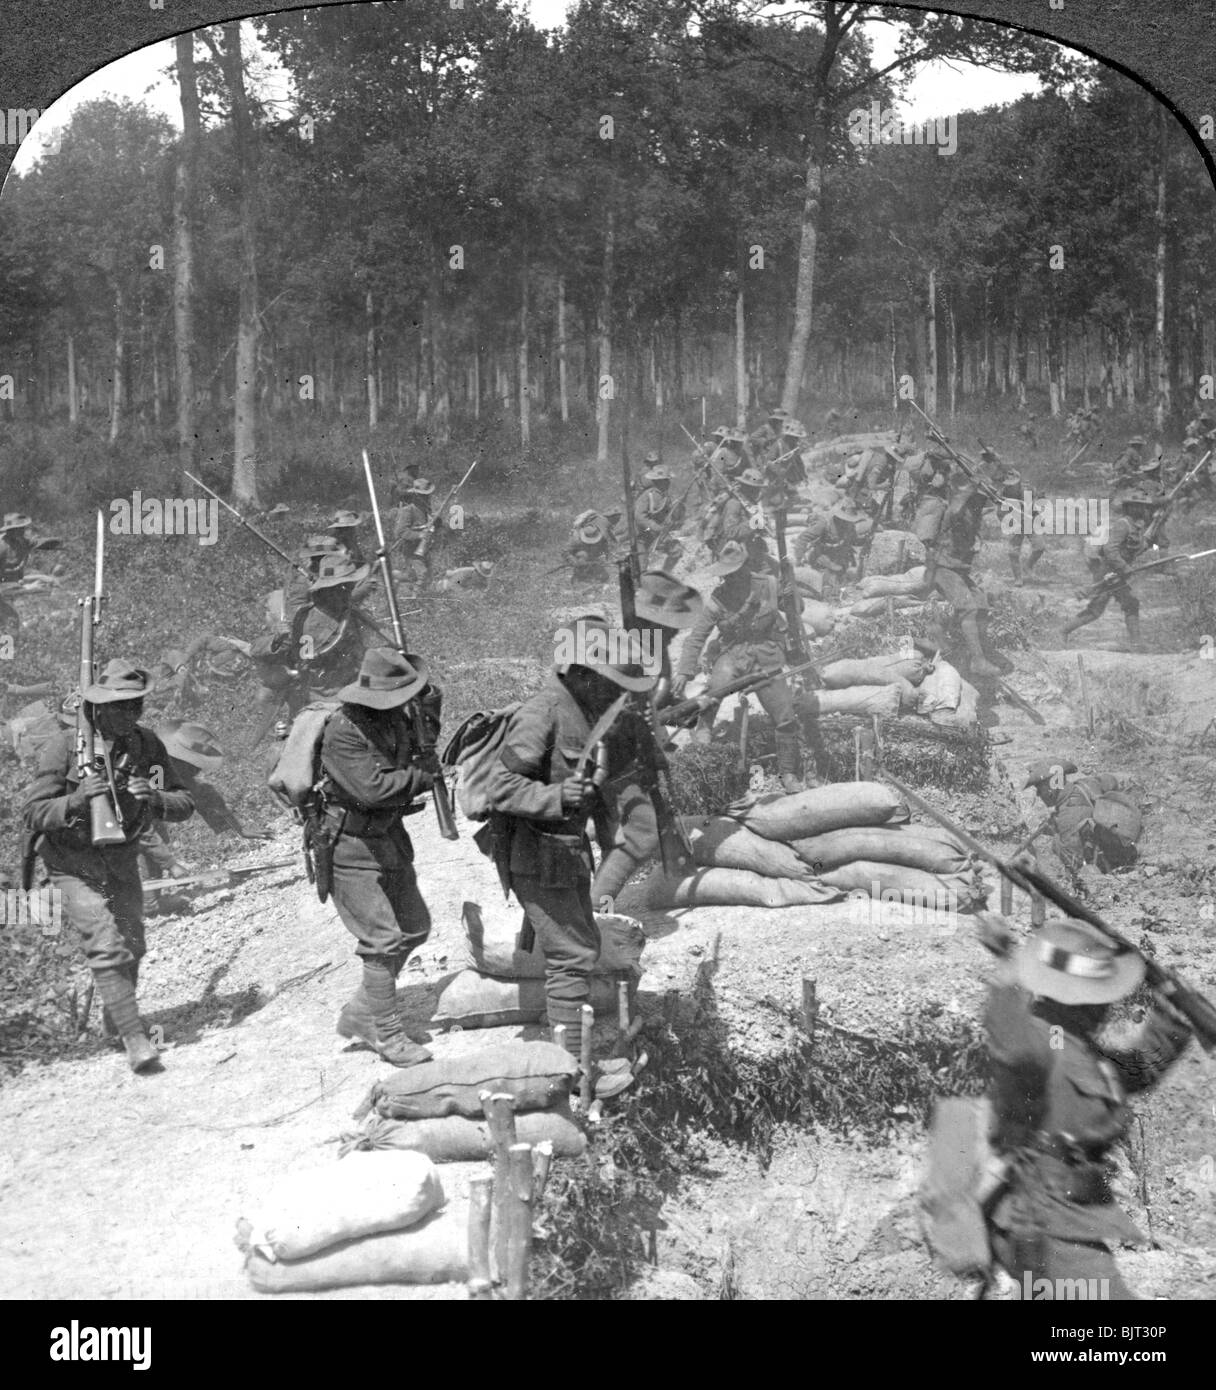 First line Gurkhas storming and capturing a German trench during the Boer War, 1900s. - Stock Image